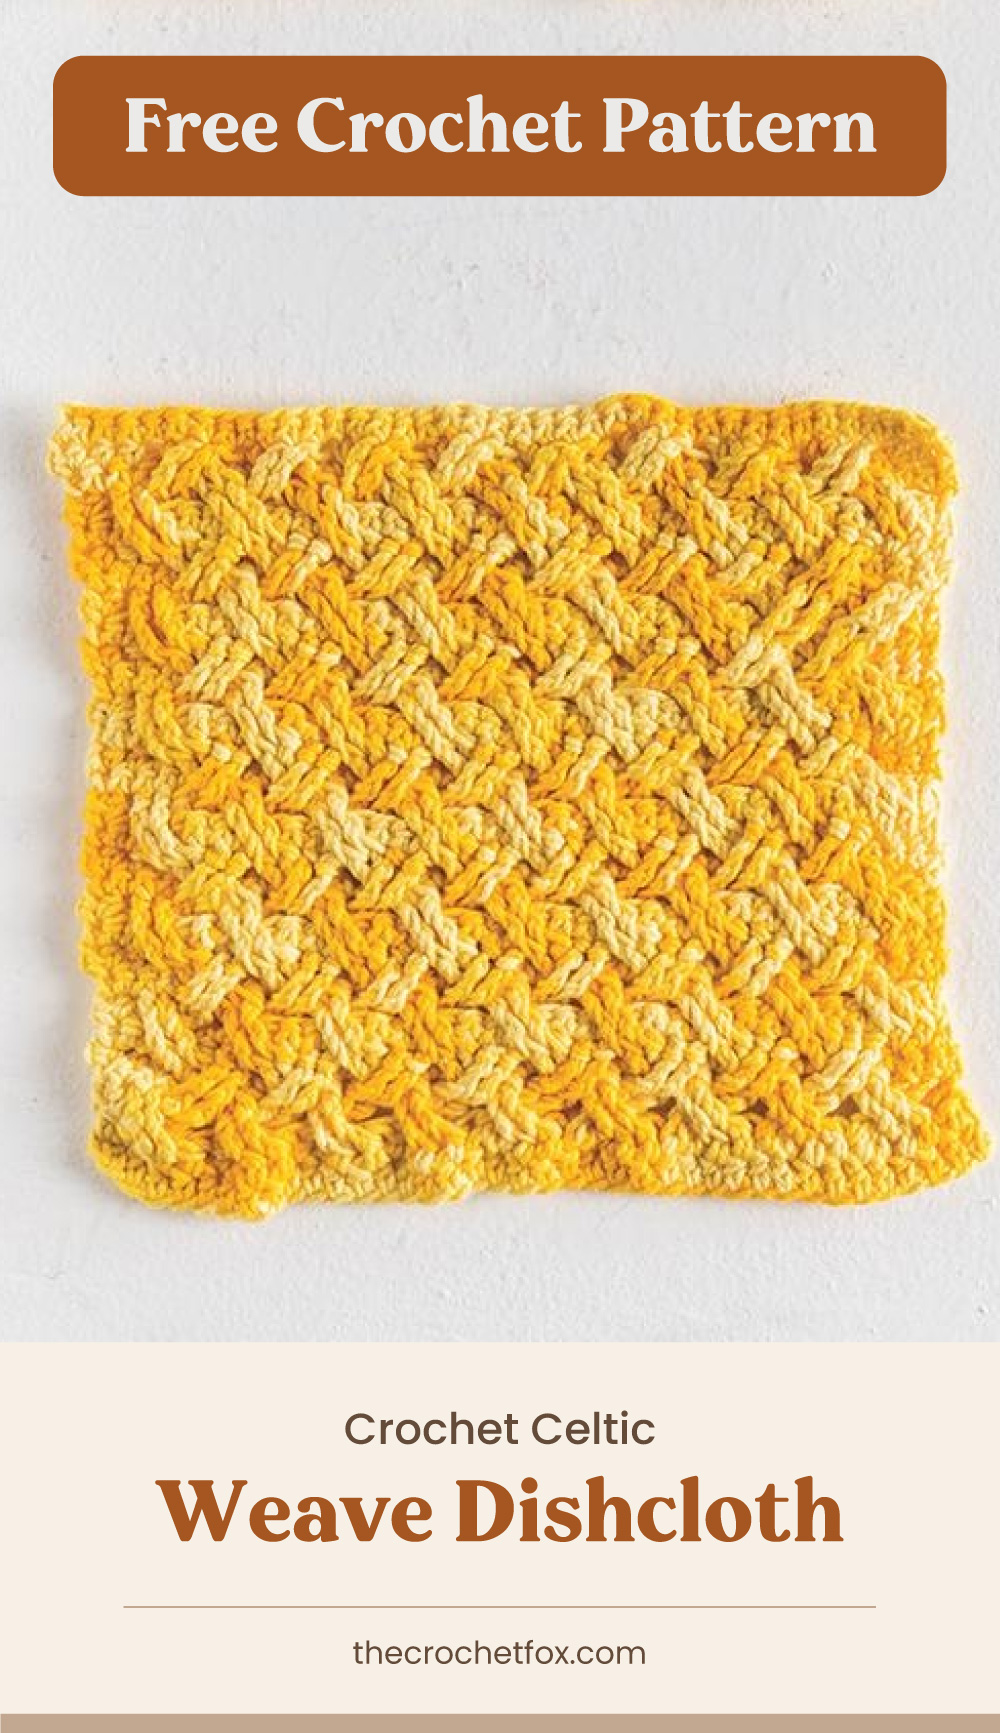 """Text area which says """"Free Crochet Pattern"""" next to a yellow crochet dishcloth with textured woven-inspired stitches followed by another text area which says """"Crochet Celtic Weave Dishcloth, thecrochetfox.com"""""""